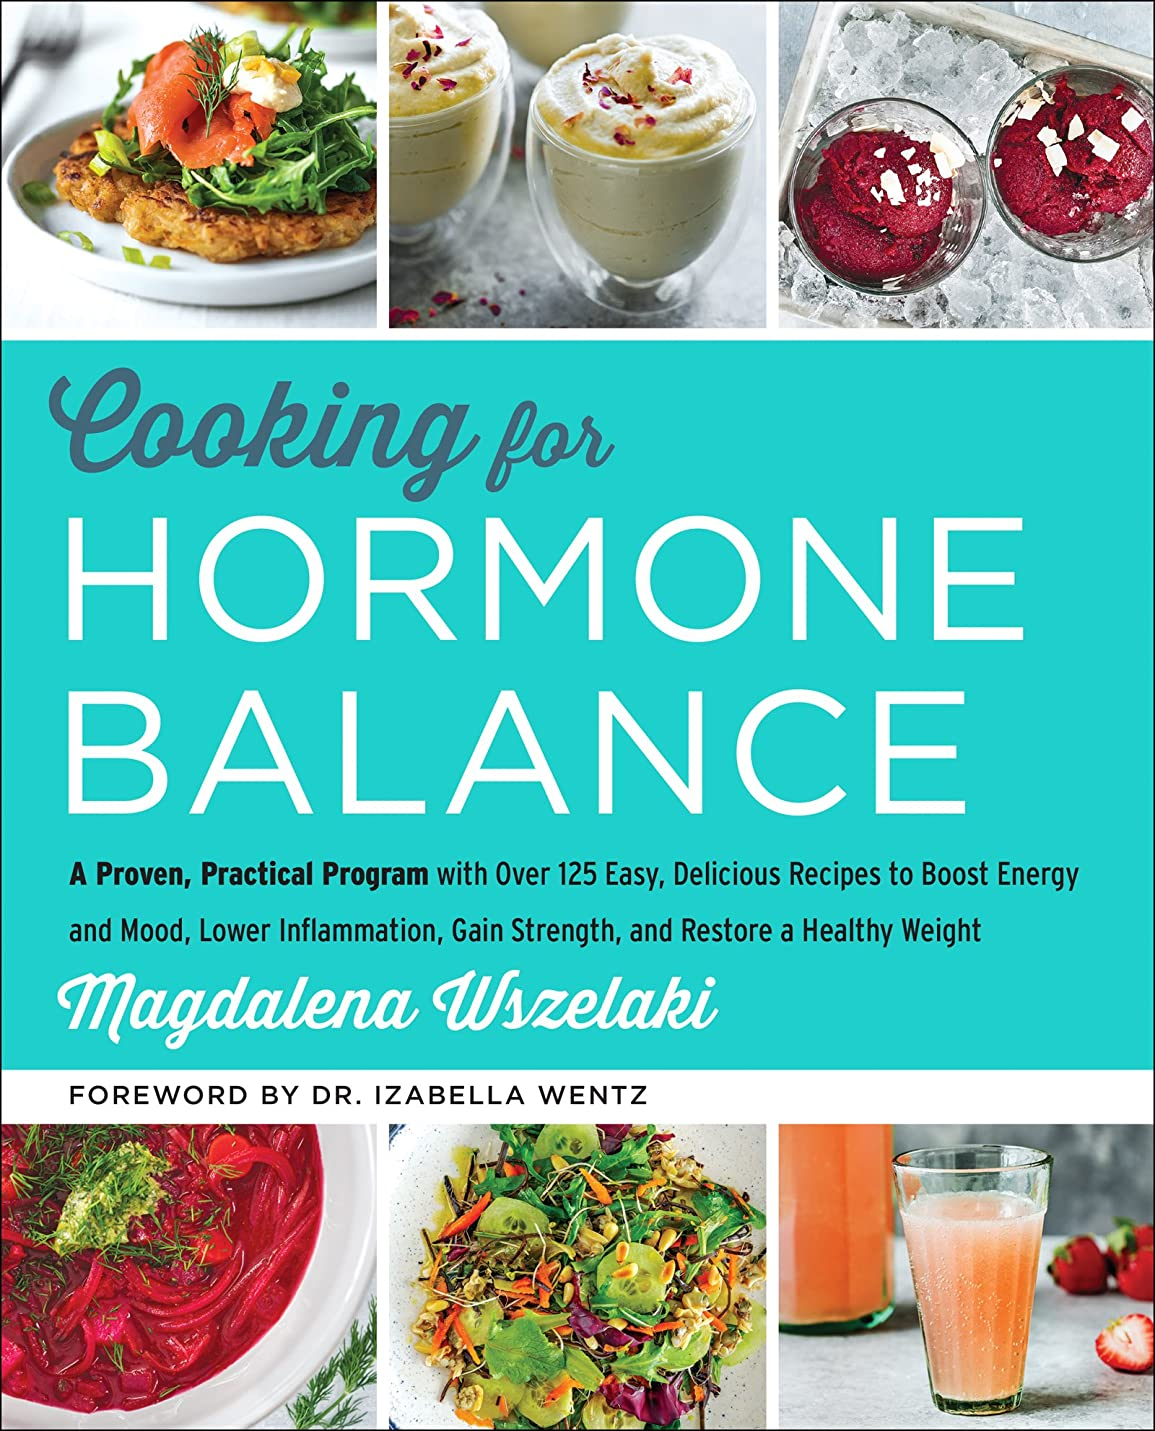 Cooking for Hormone Balance: A Proven, Practical Program with Over 125 Easy, Delicious Recipes to Boost Energy and Mood, Lower Inflammation, Gain Strength, ... Restore a Healthy Weight (English Edition)